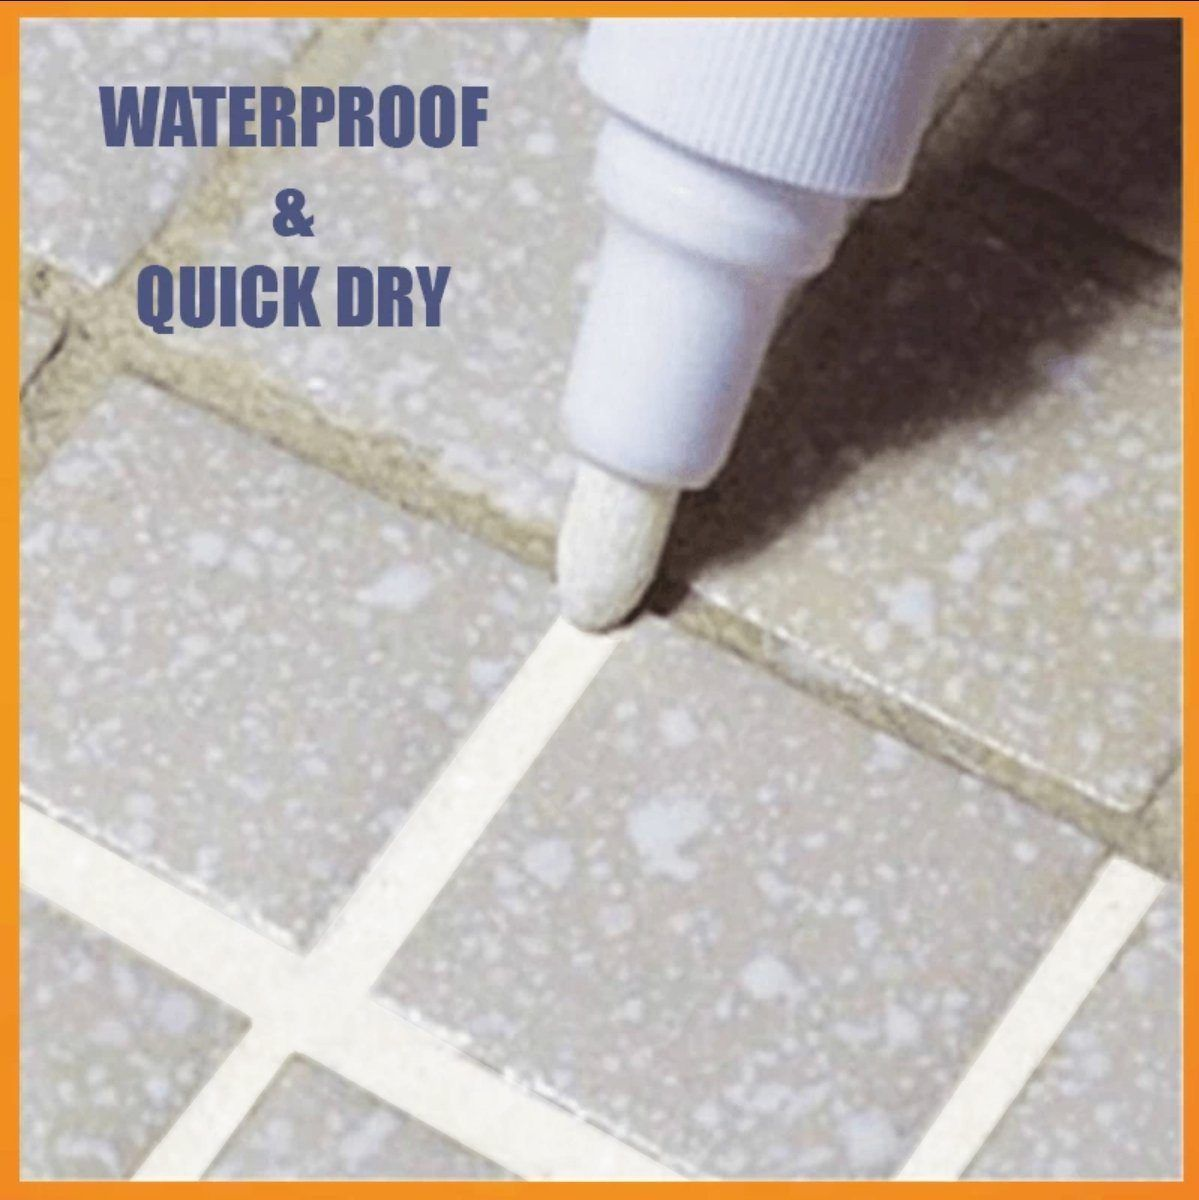 Waterproof Tile Grout Maker